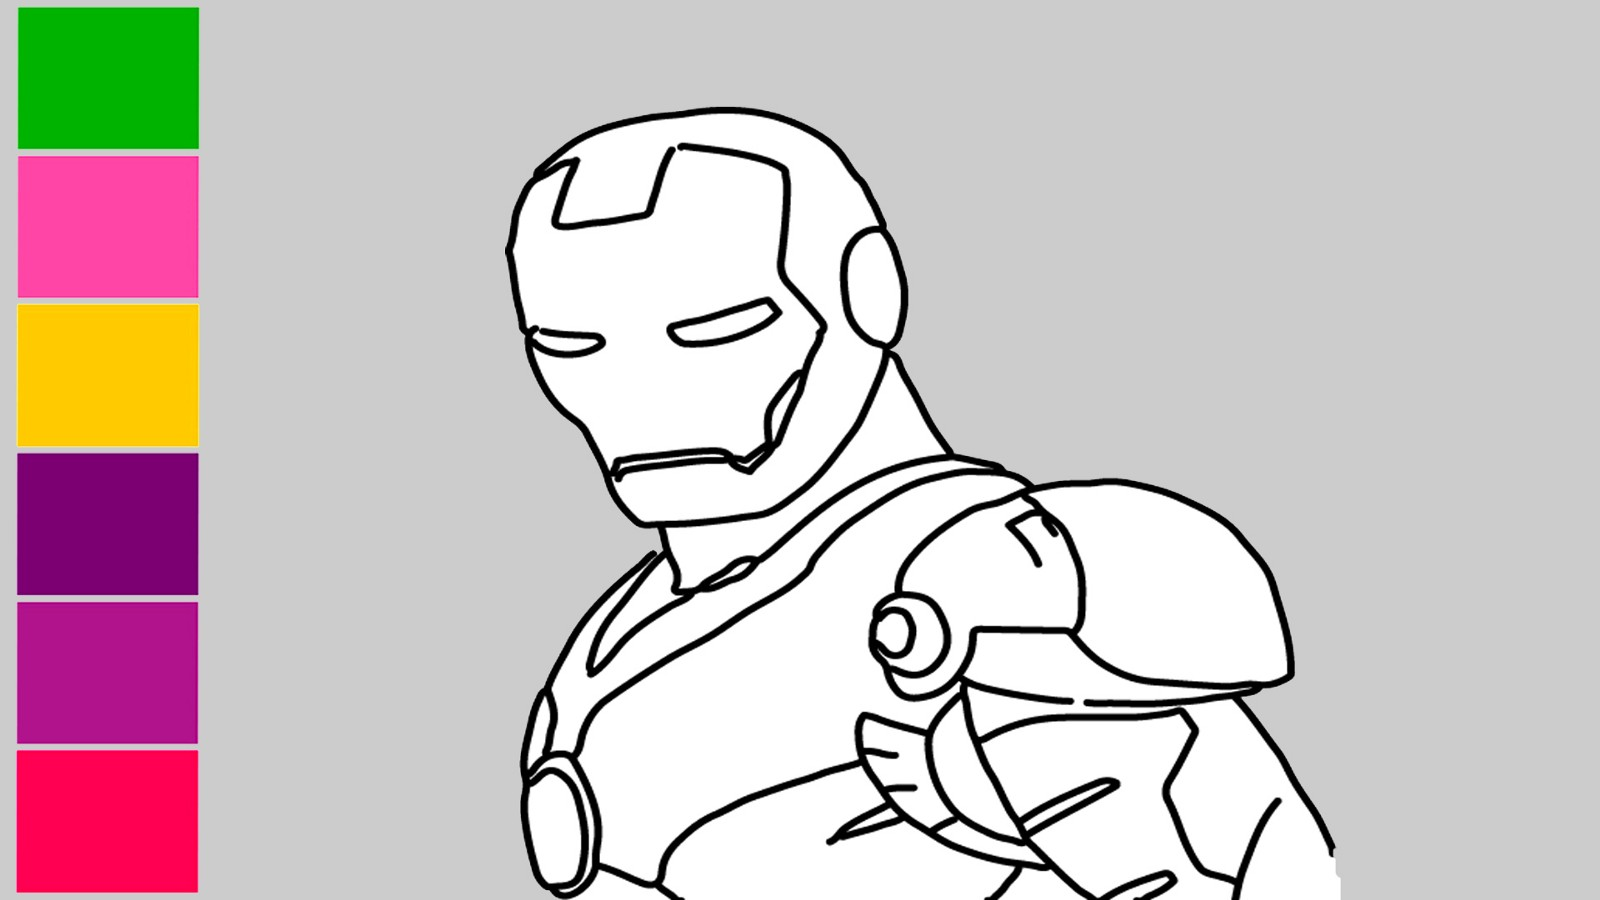 How to draw iron man infinity war drawing in pencil